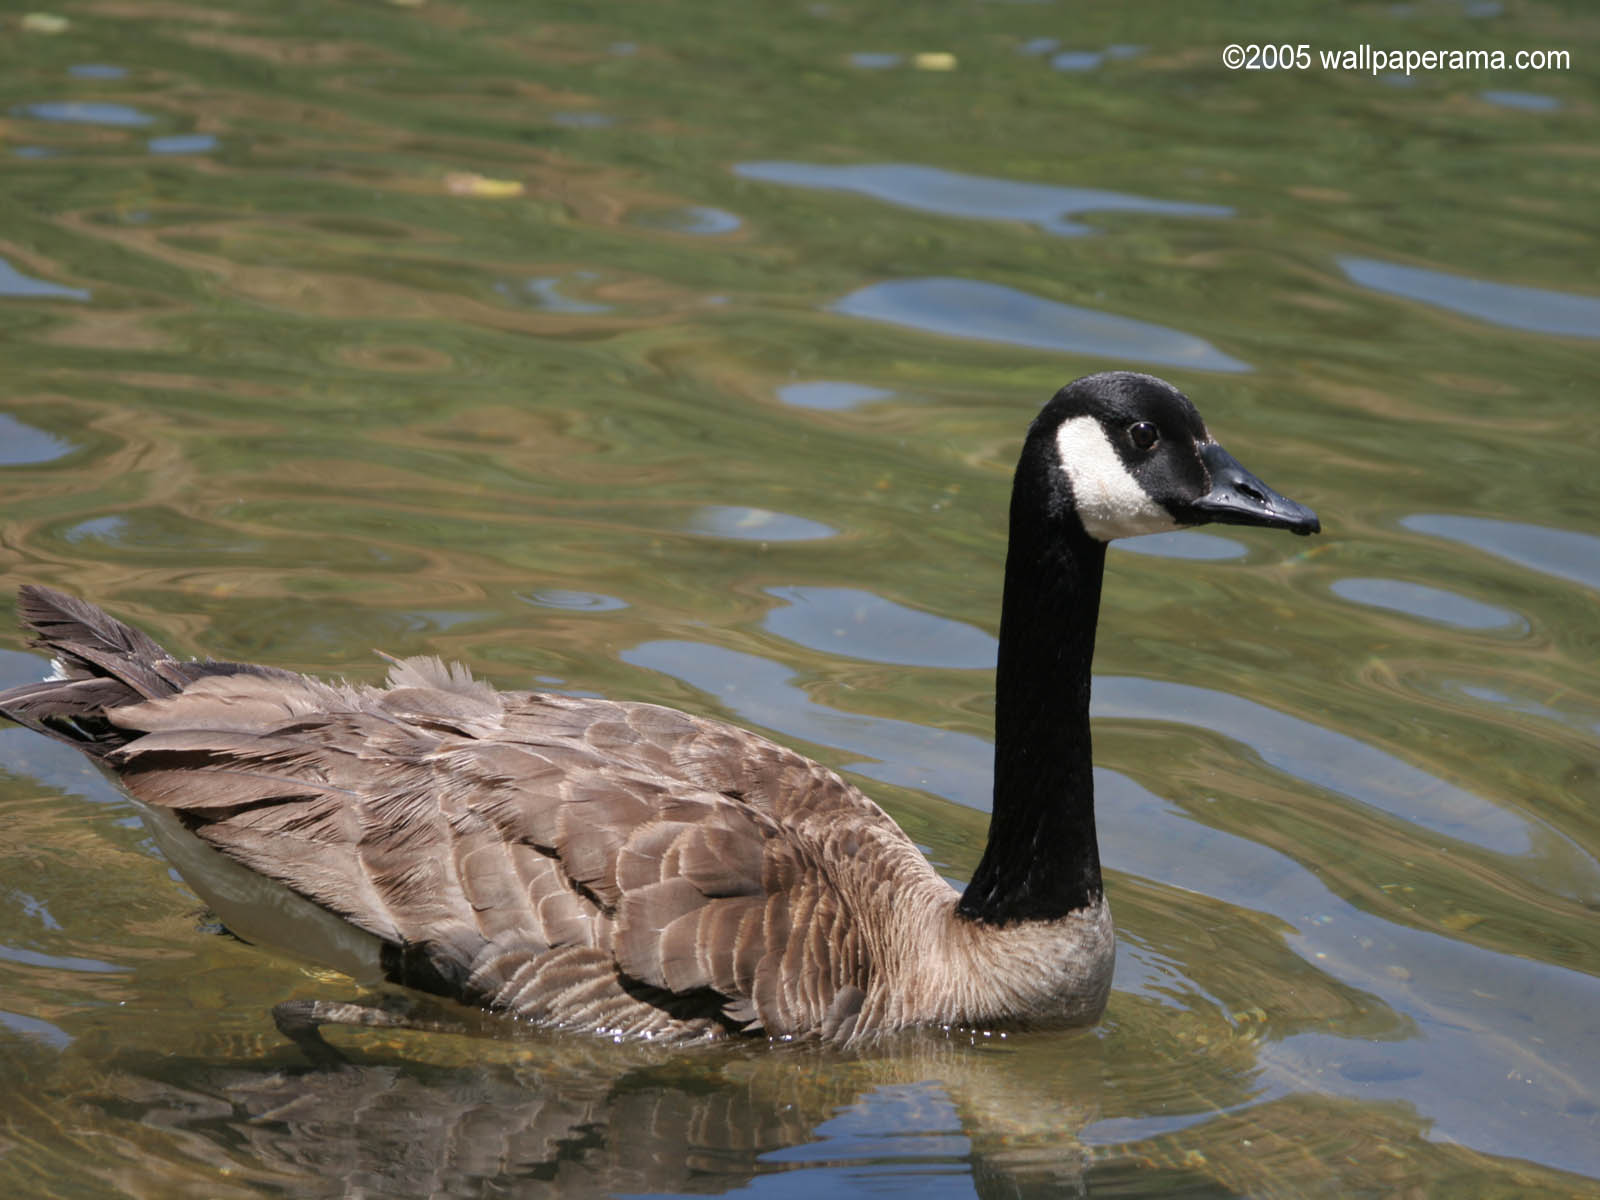 Canadian Goose Wallpaper HD Backgrounds Images Pictures 1600x1200